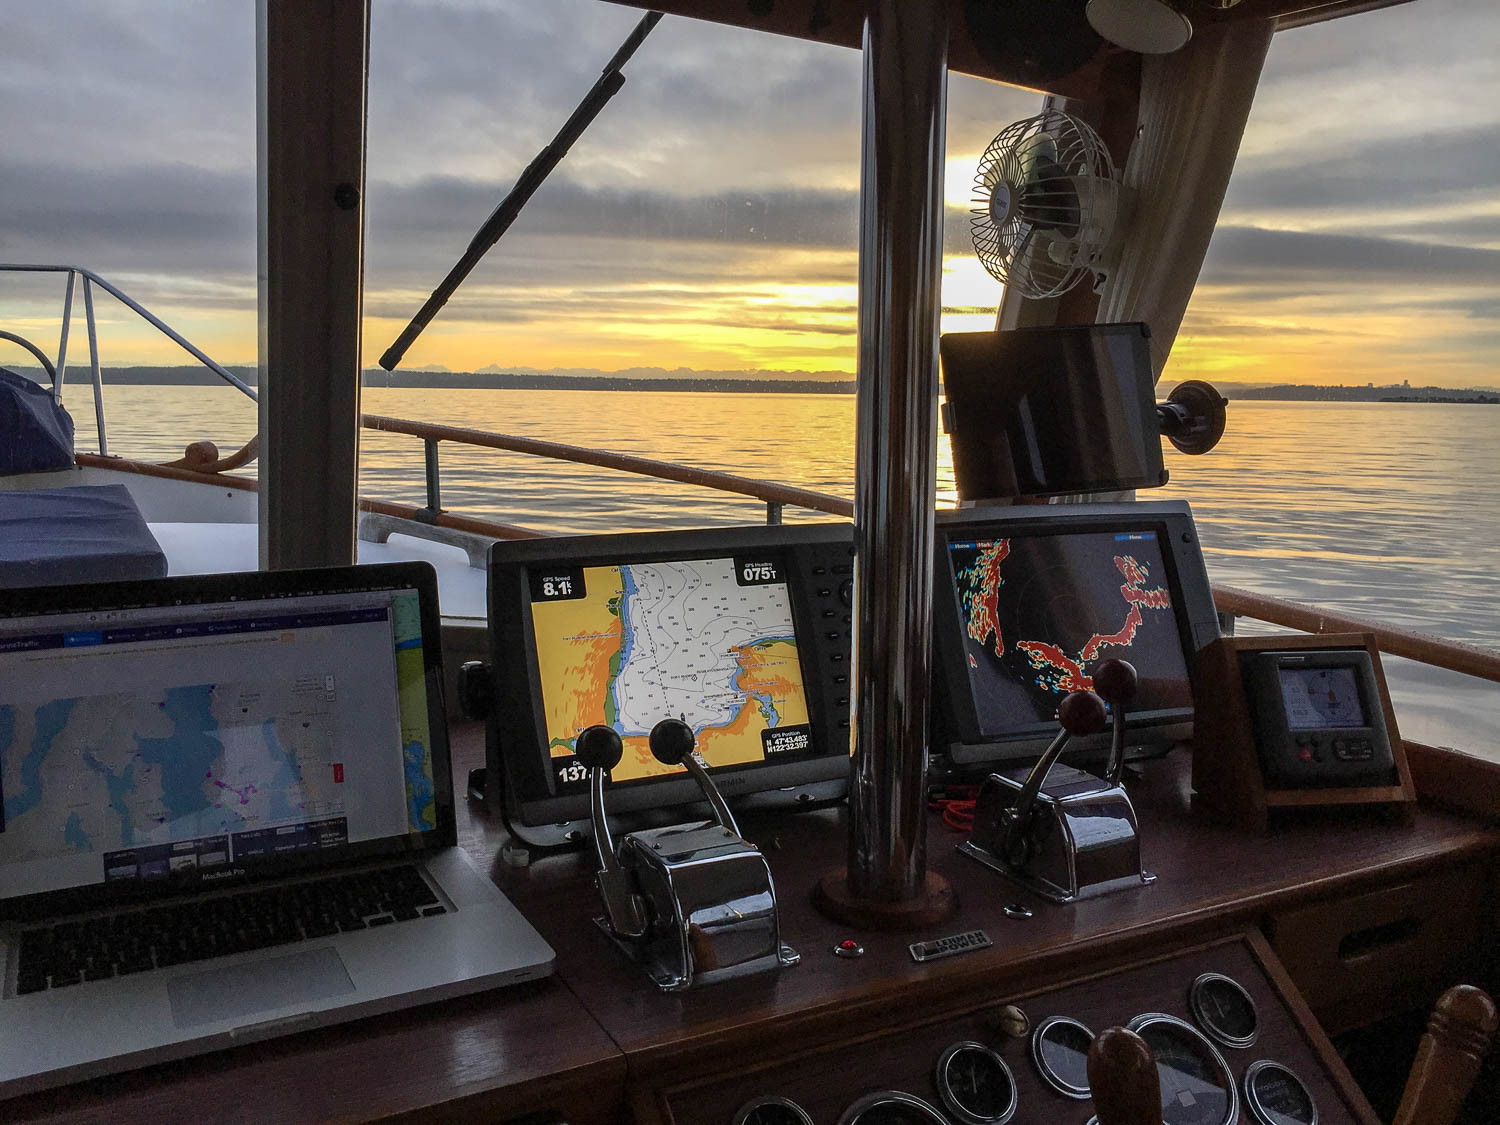 Headed to Sidney for brightwork work | M/V Archimedes - An